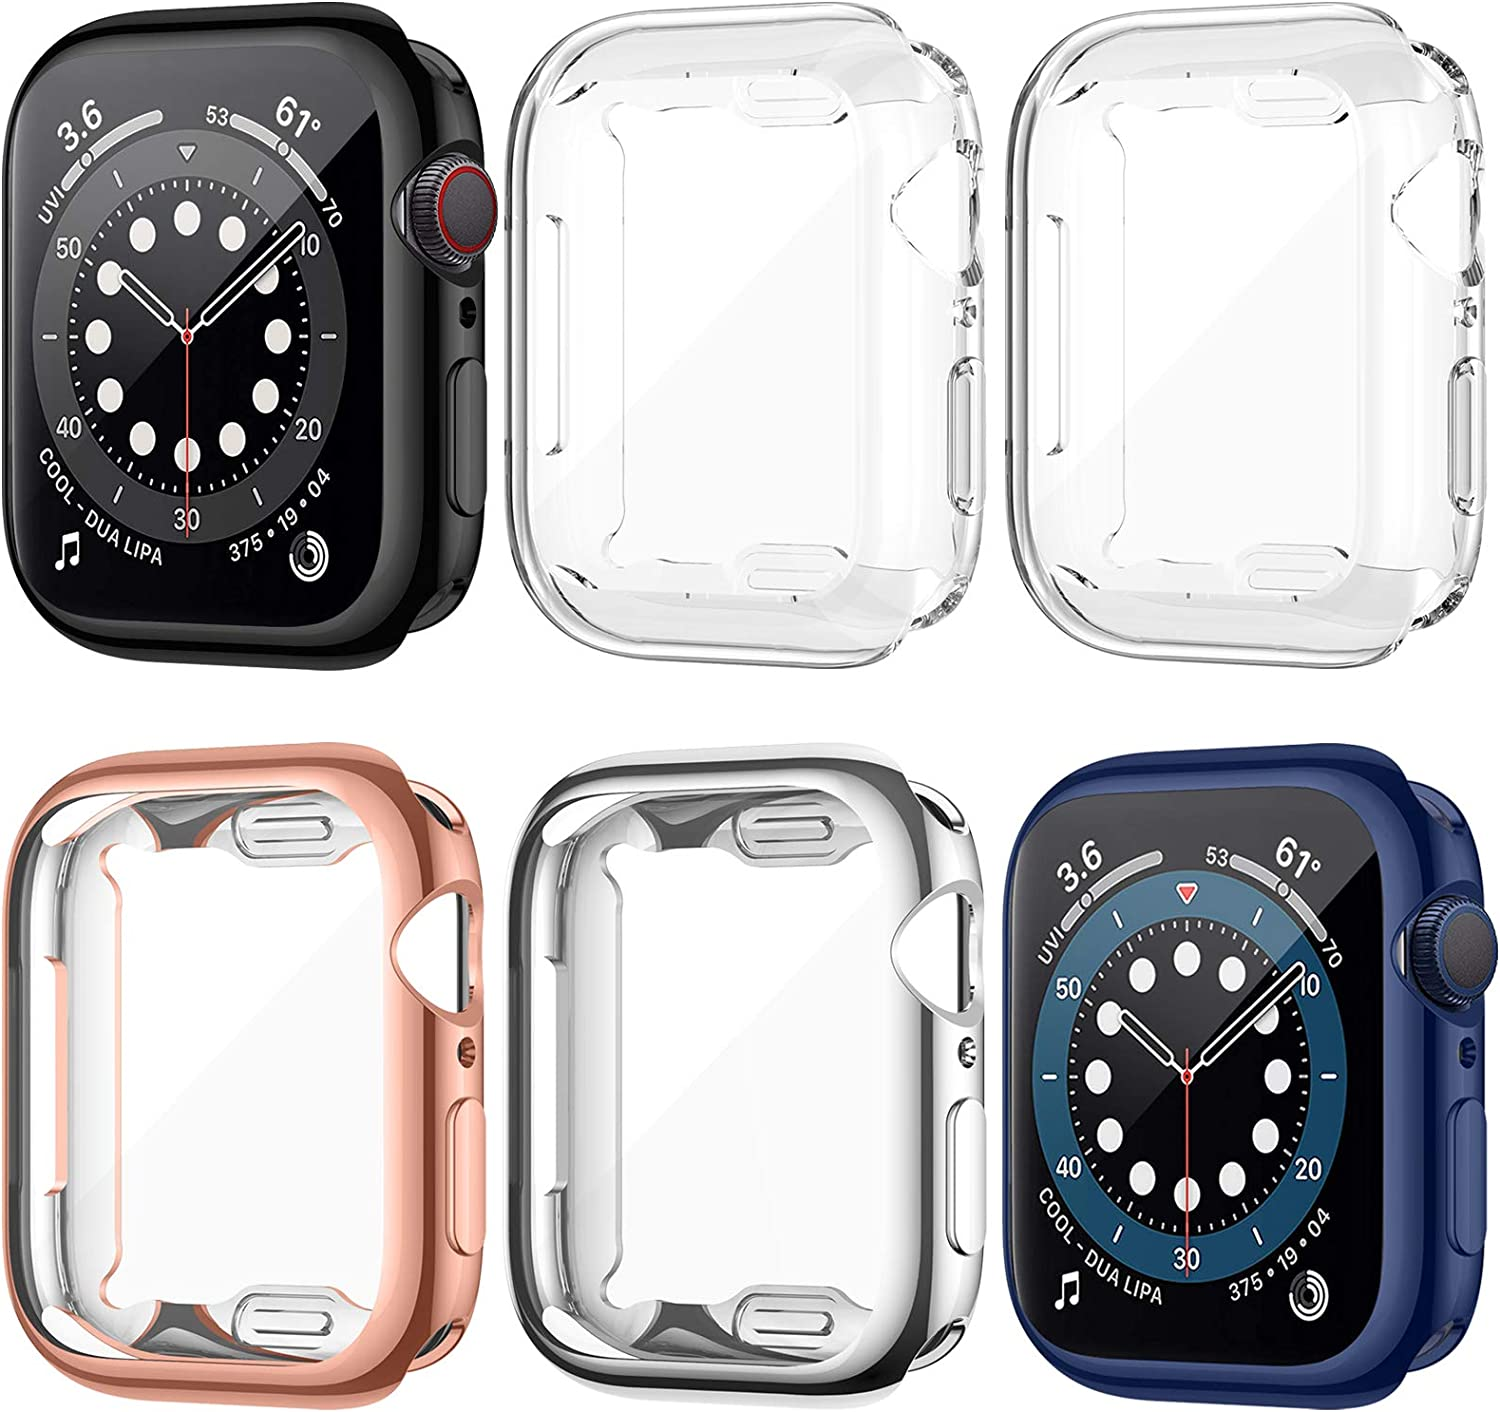 LORDSON 6 Pack Screen Protector Case Compatible with Apple Watch SE Series 6/5/4 44mm, All-Around Soft TPU Protective Case Watch Cover Bumper Watch Guards Compatible with iWatch SE/6/5/4